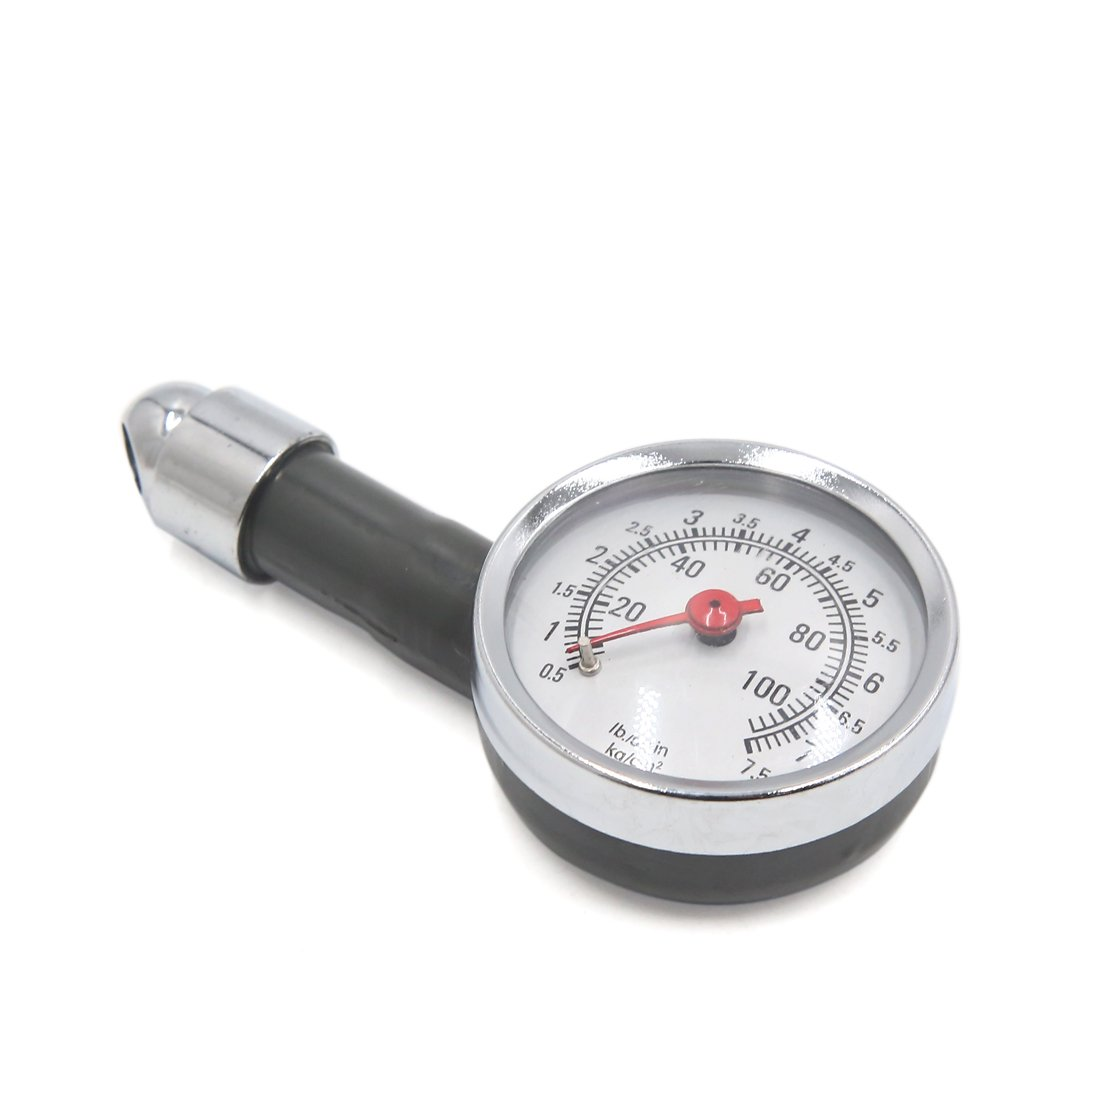 uxcell Universal Tire Air Pressure Gauge Dial Meter Tester Manometer for Motorcycle Car